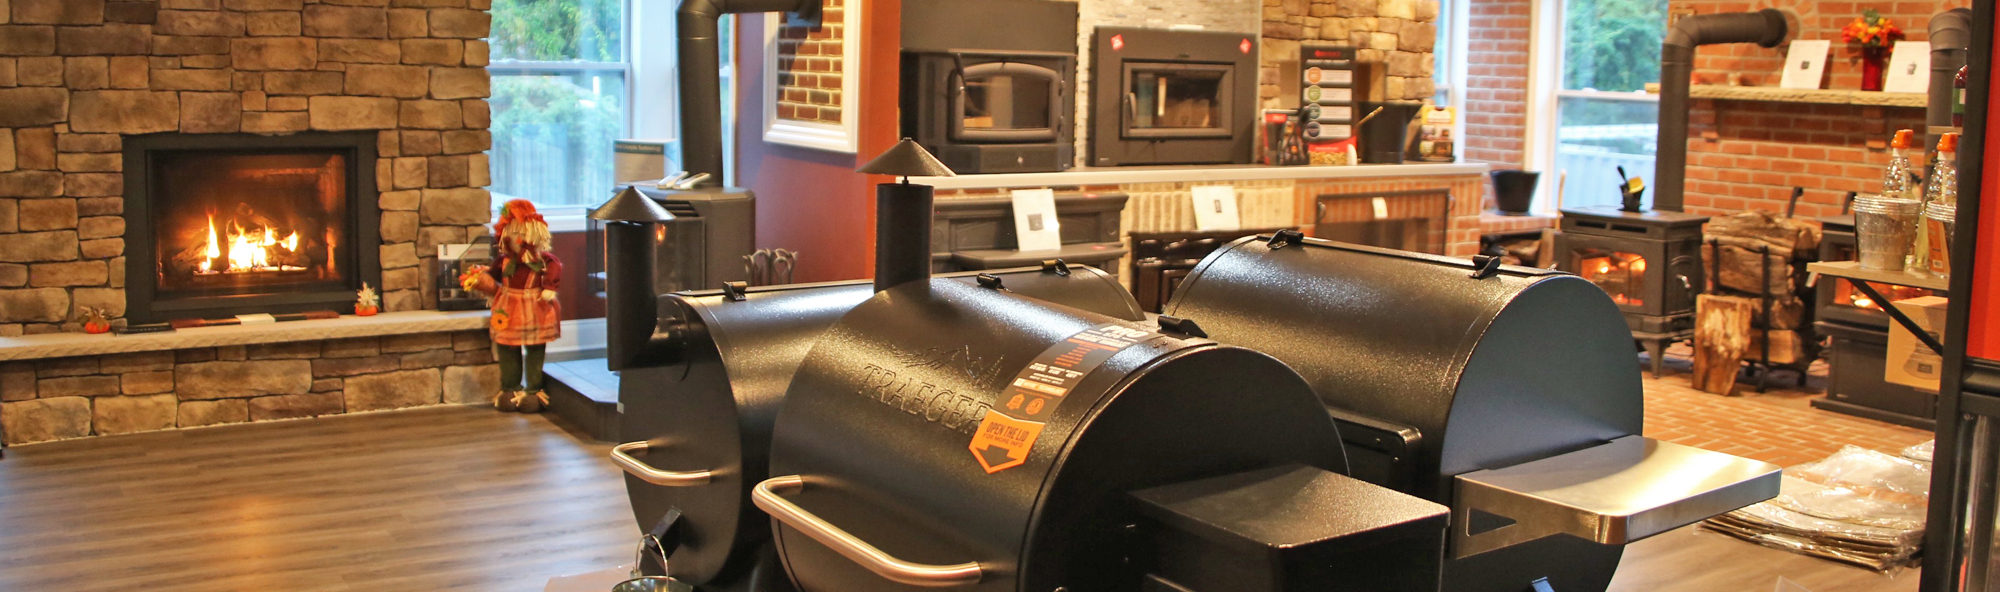 fireplace inserts & stoves for sale in Annapolis MD